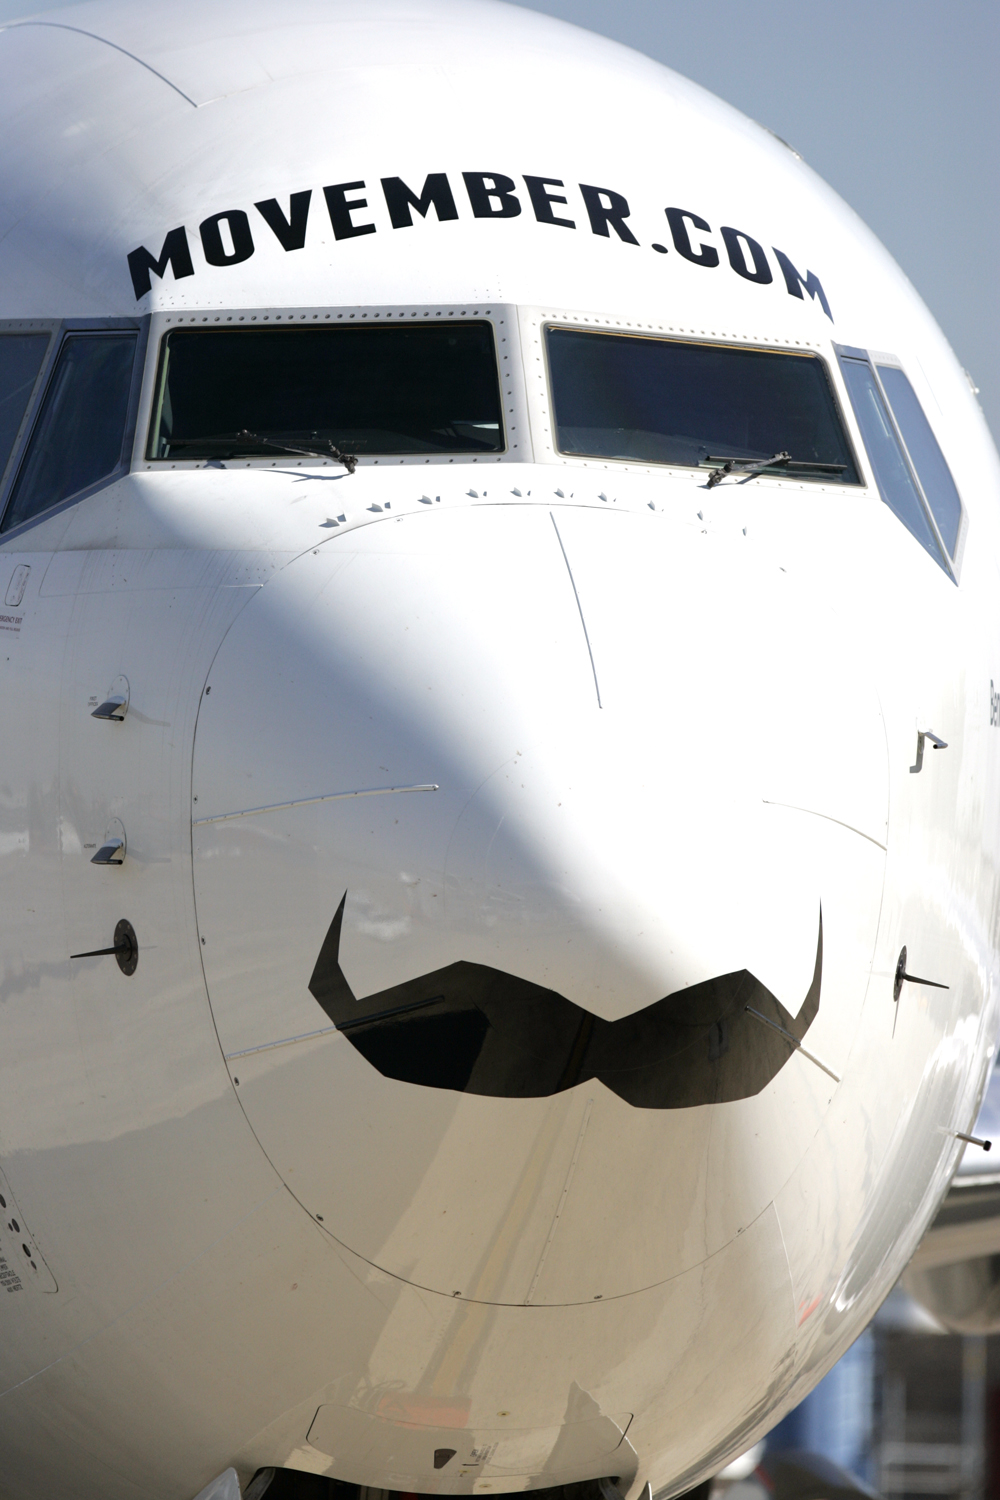 18.5.5 Movember Airplane